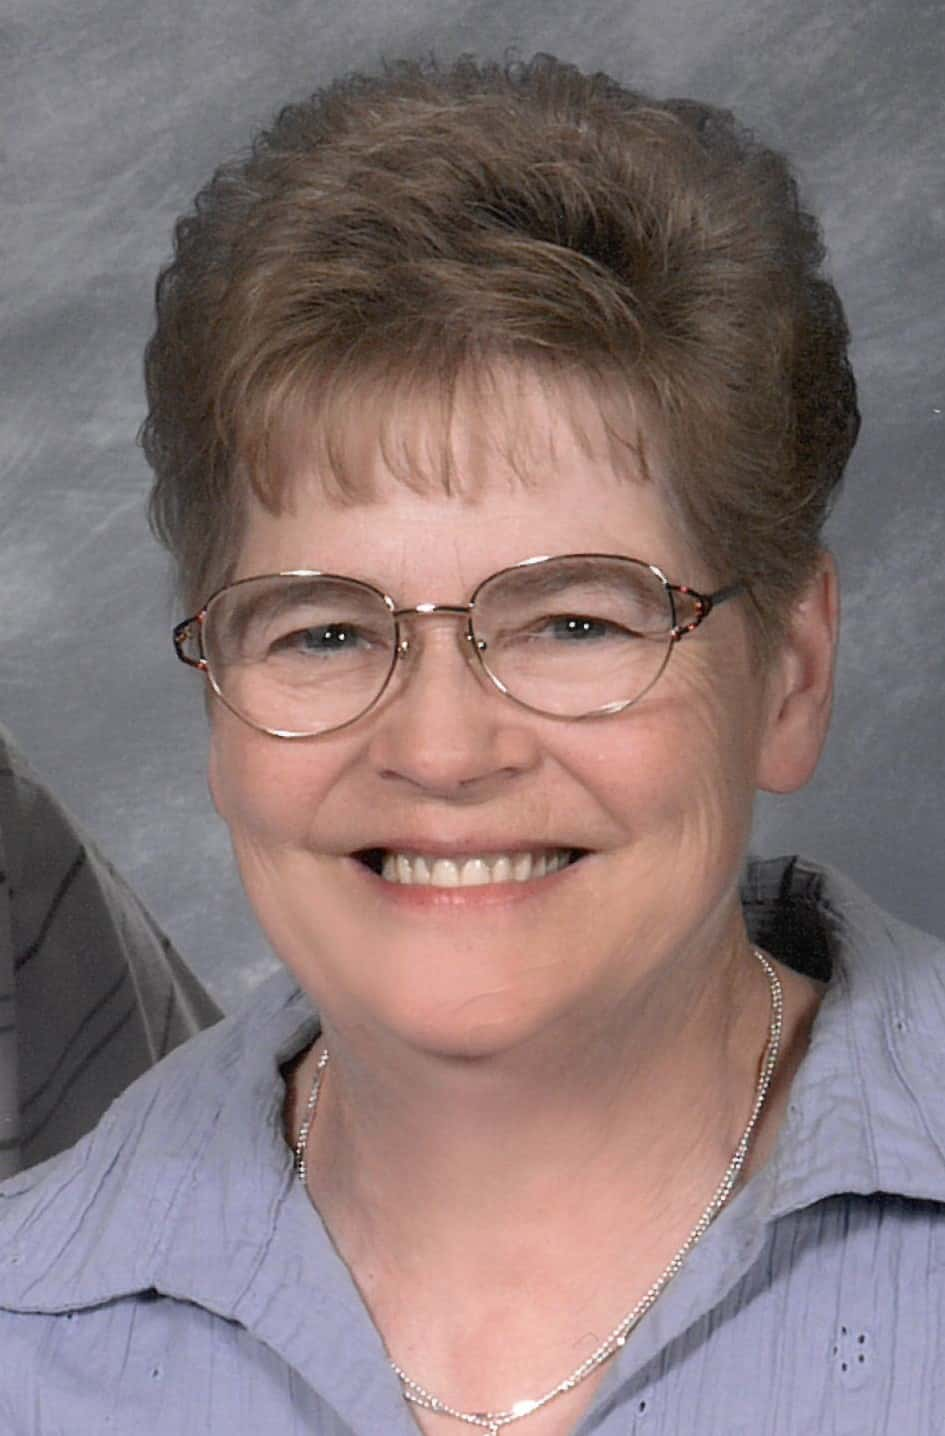 Funeral Services For 73 Year Old Diane Henkelman Of Manning Will Be  Wednesday, April 25th At 10:00 A.m. At The Zion Lutheran Church In Manning.